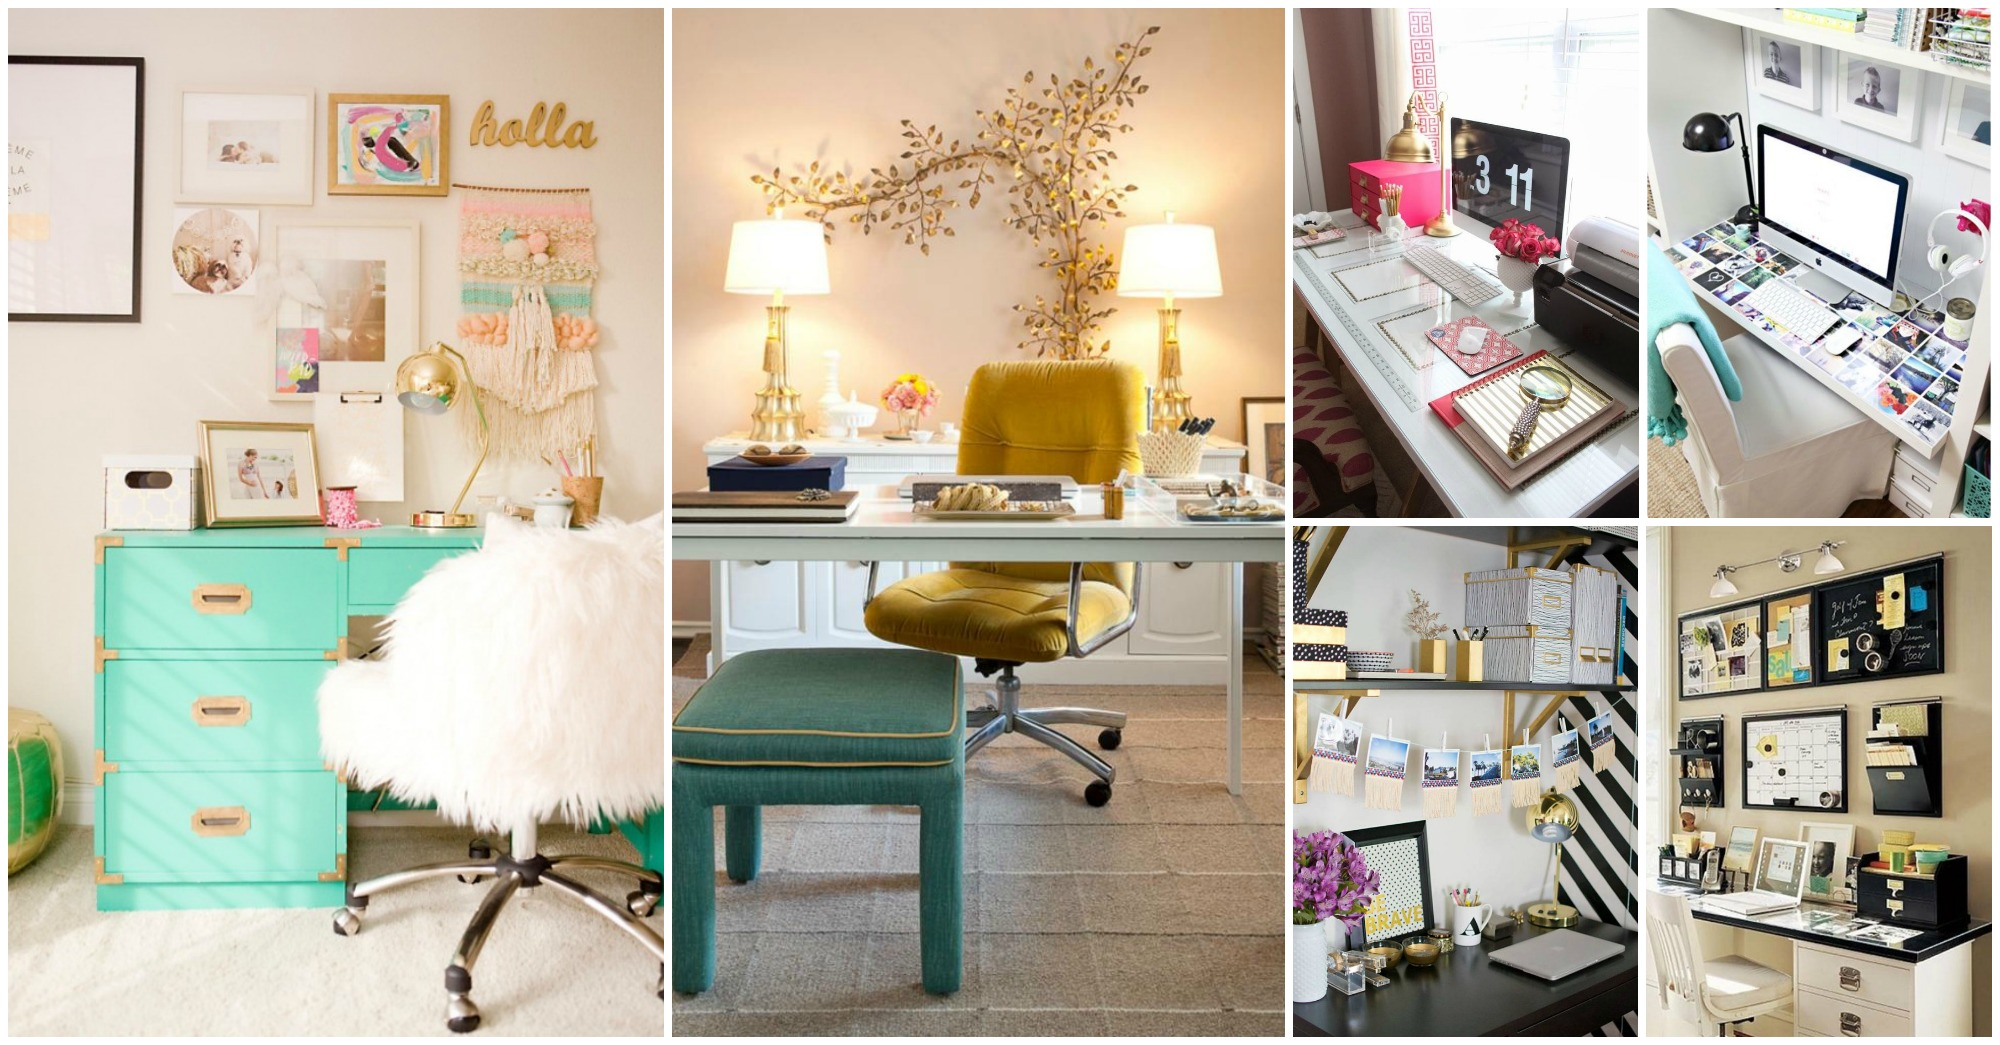 20 + Inspiring Home Office Decor Ideas That Will Blow Your